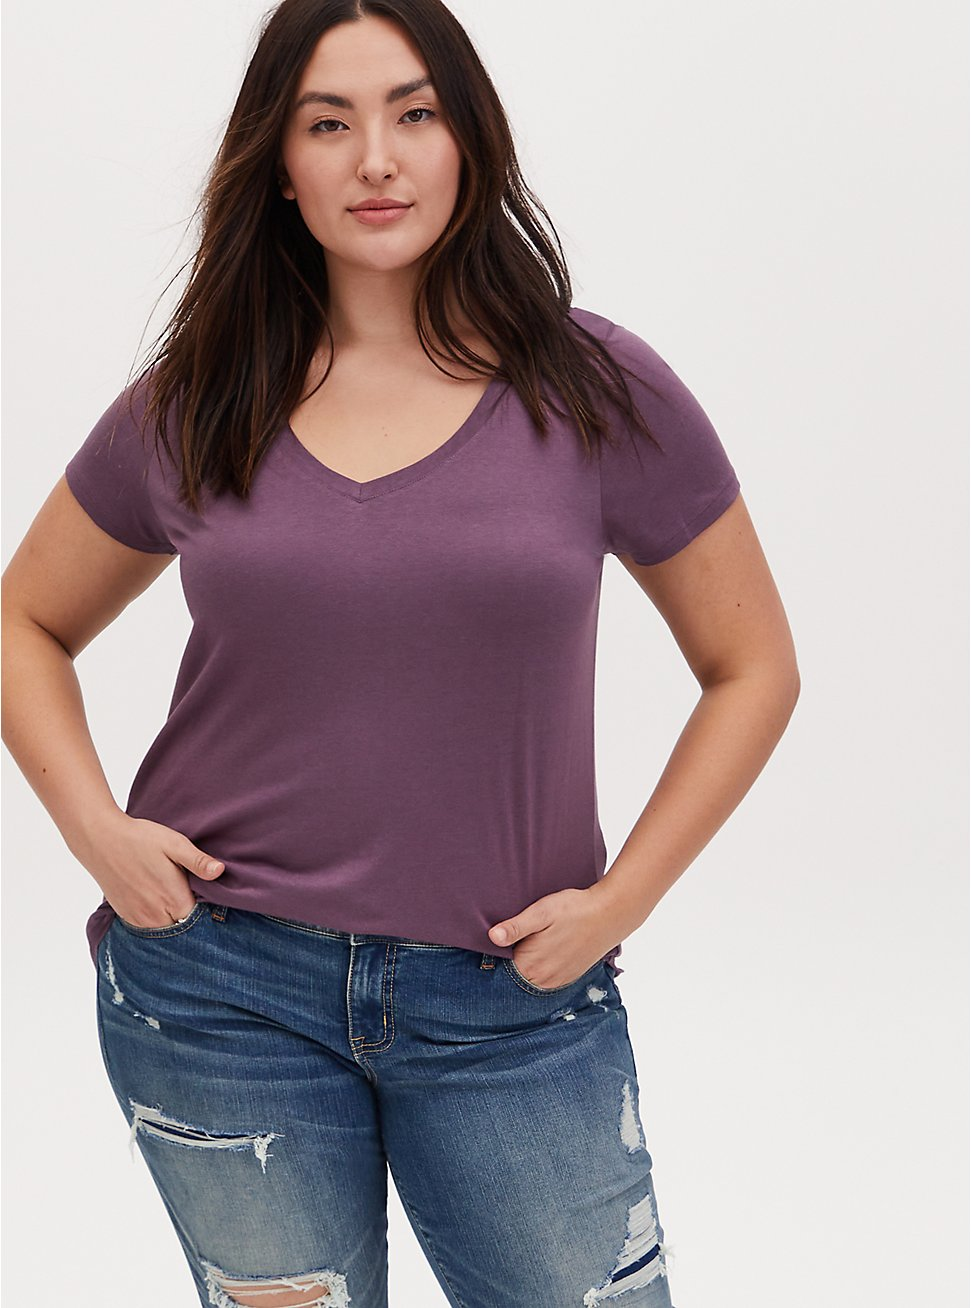 Classic Fit V-Neck Tee - Heritage Cotton Vintage Purple, VINTAGE VIOLET, hi-res